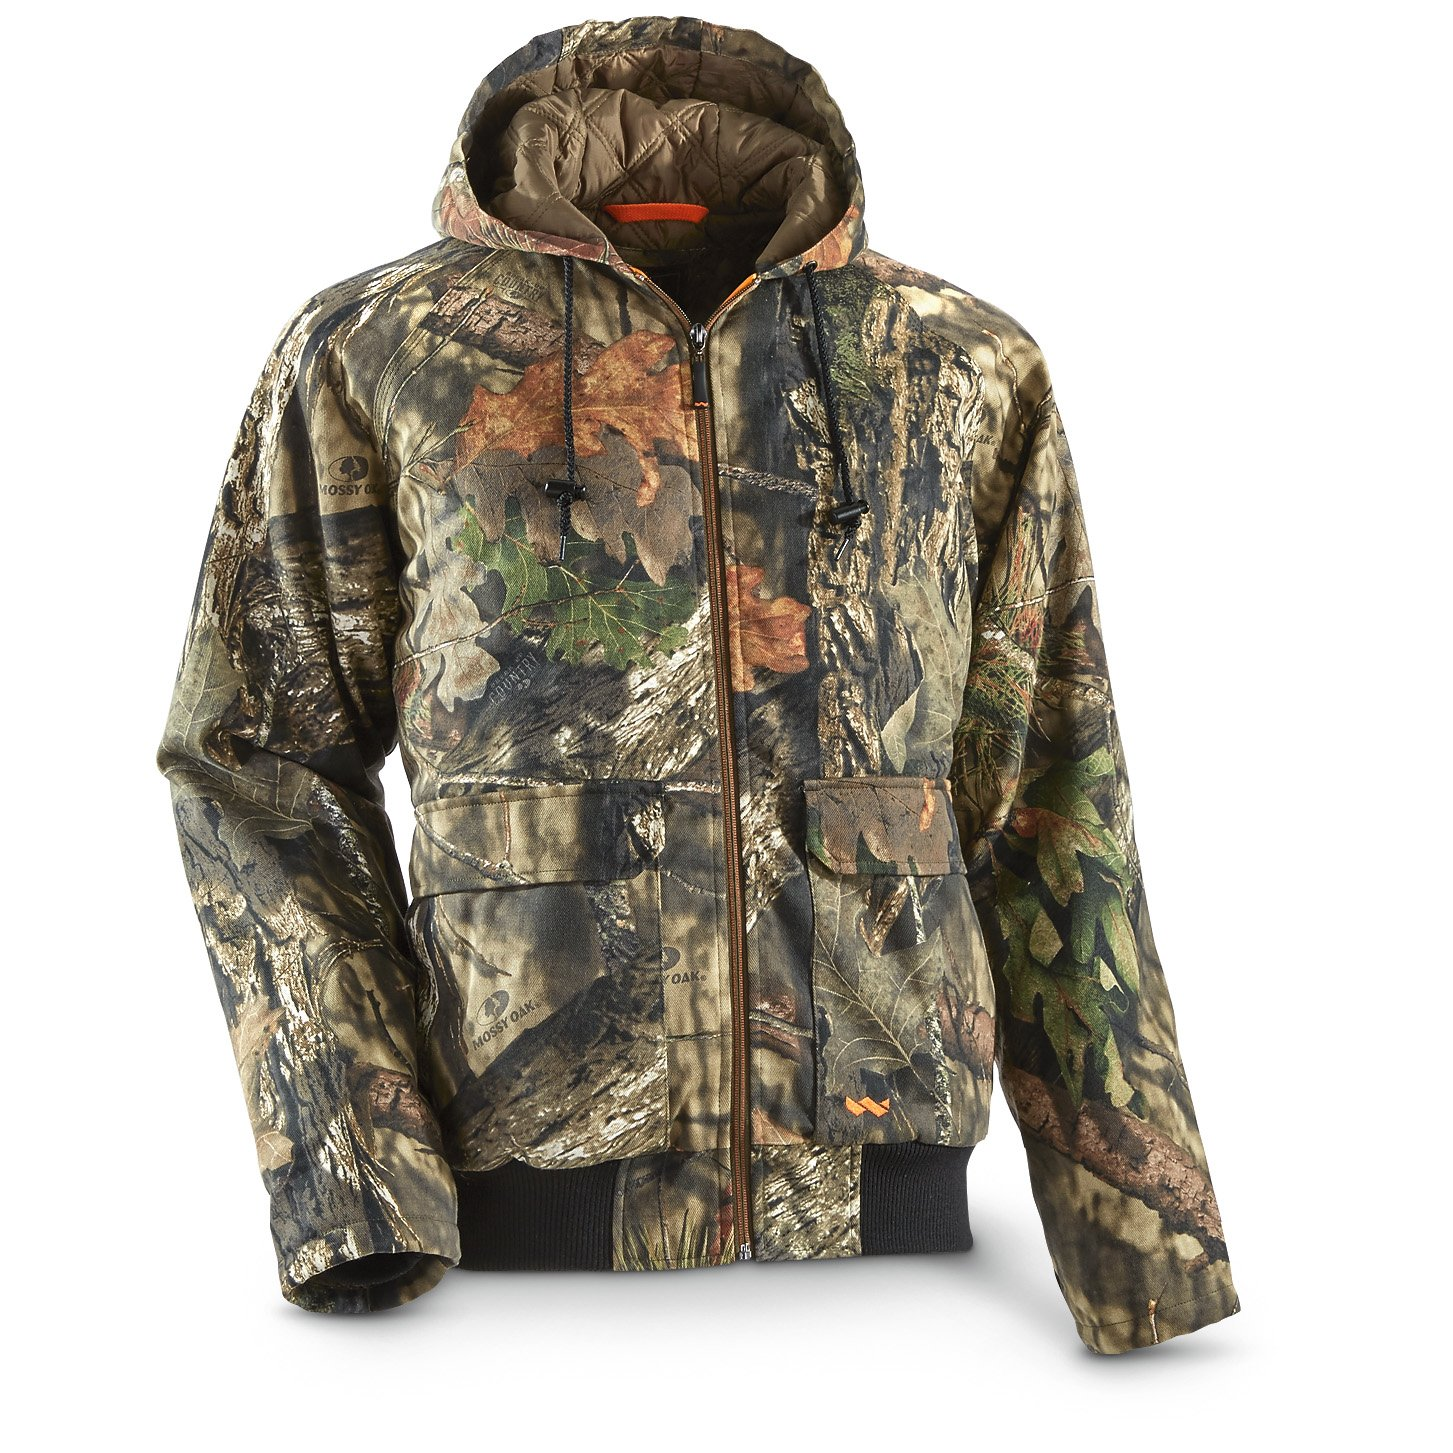 ca8f0fdce2ef9 Amazon.com: Walls Men's Hunt Insulated Bomber Jacket, Mossy Oak Breakup  Country, L: Sports & Outdoors